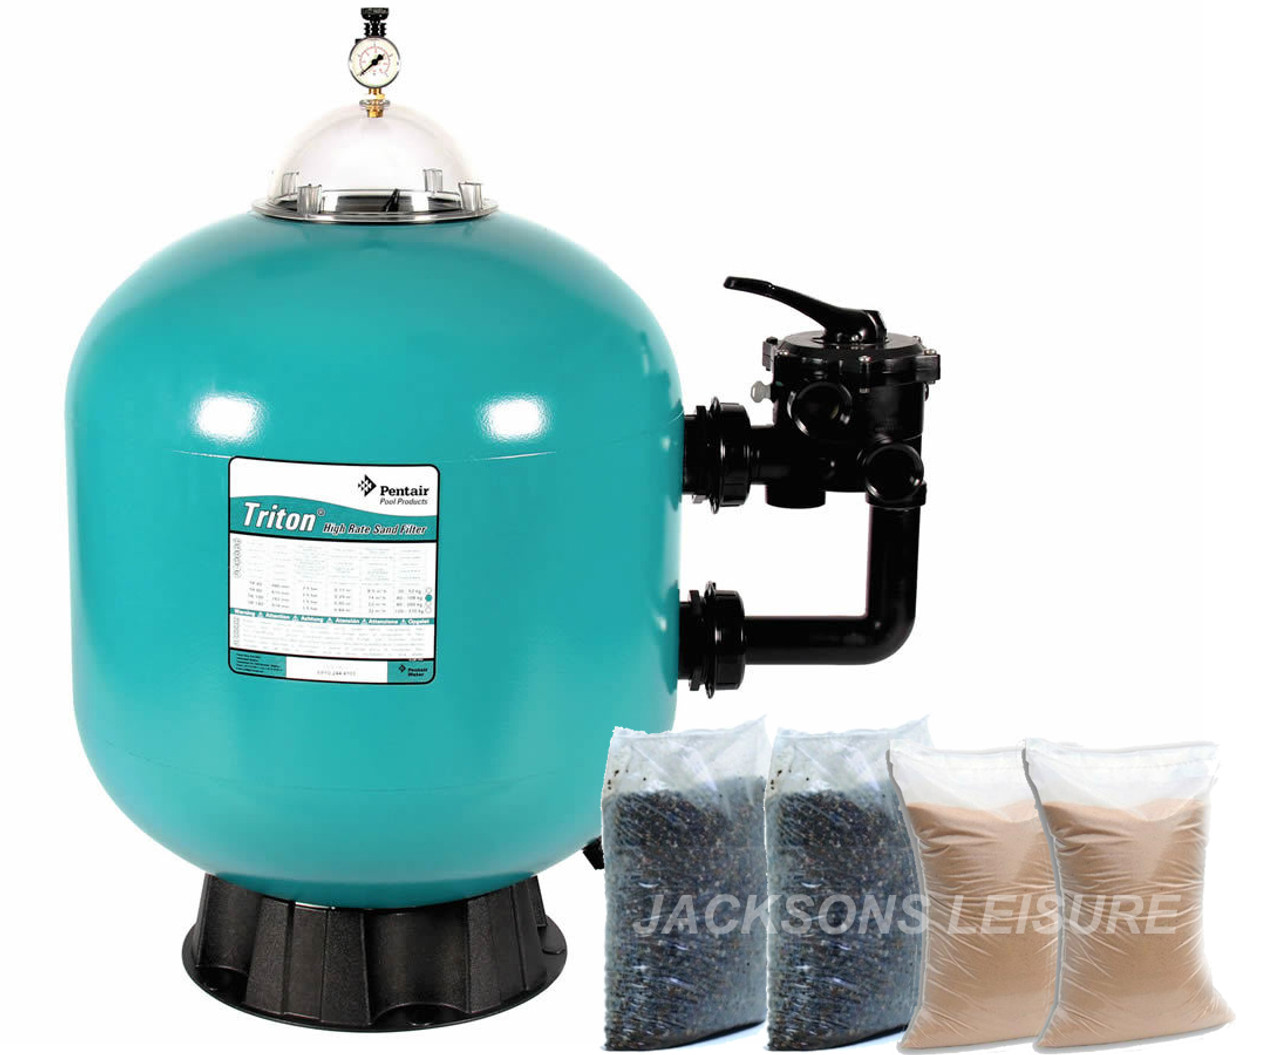 Pentair Triton Swmming Pool filter and filter sand gravel